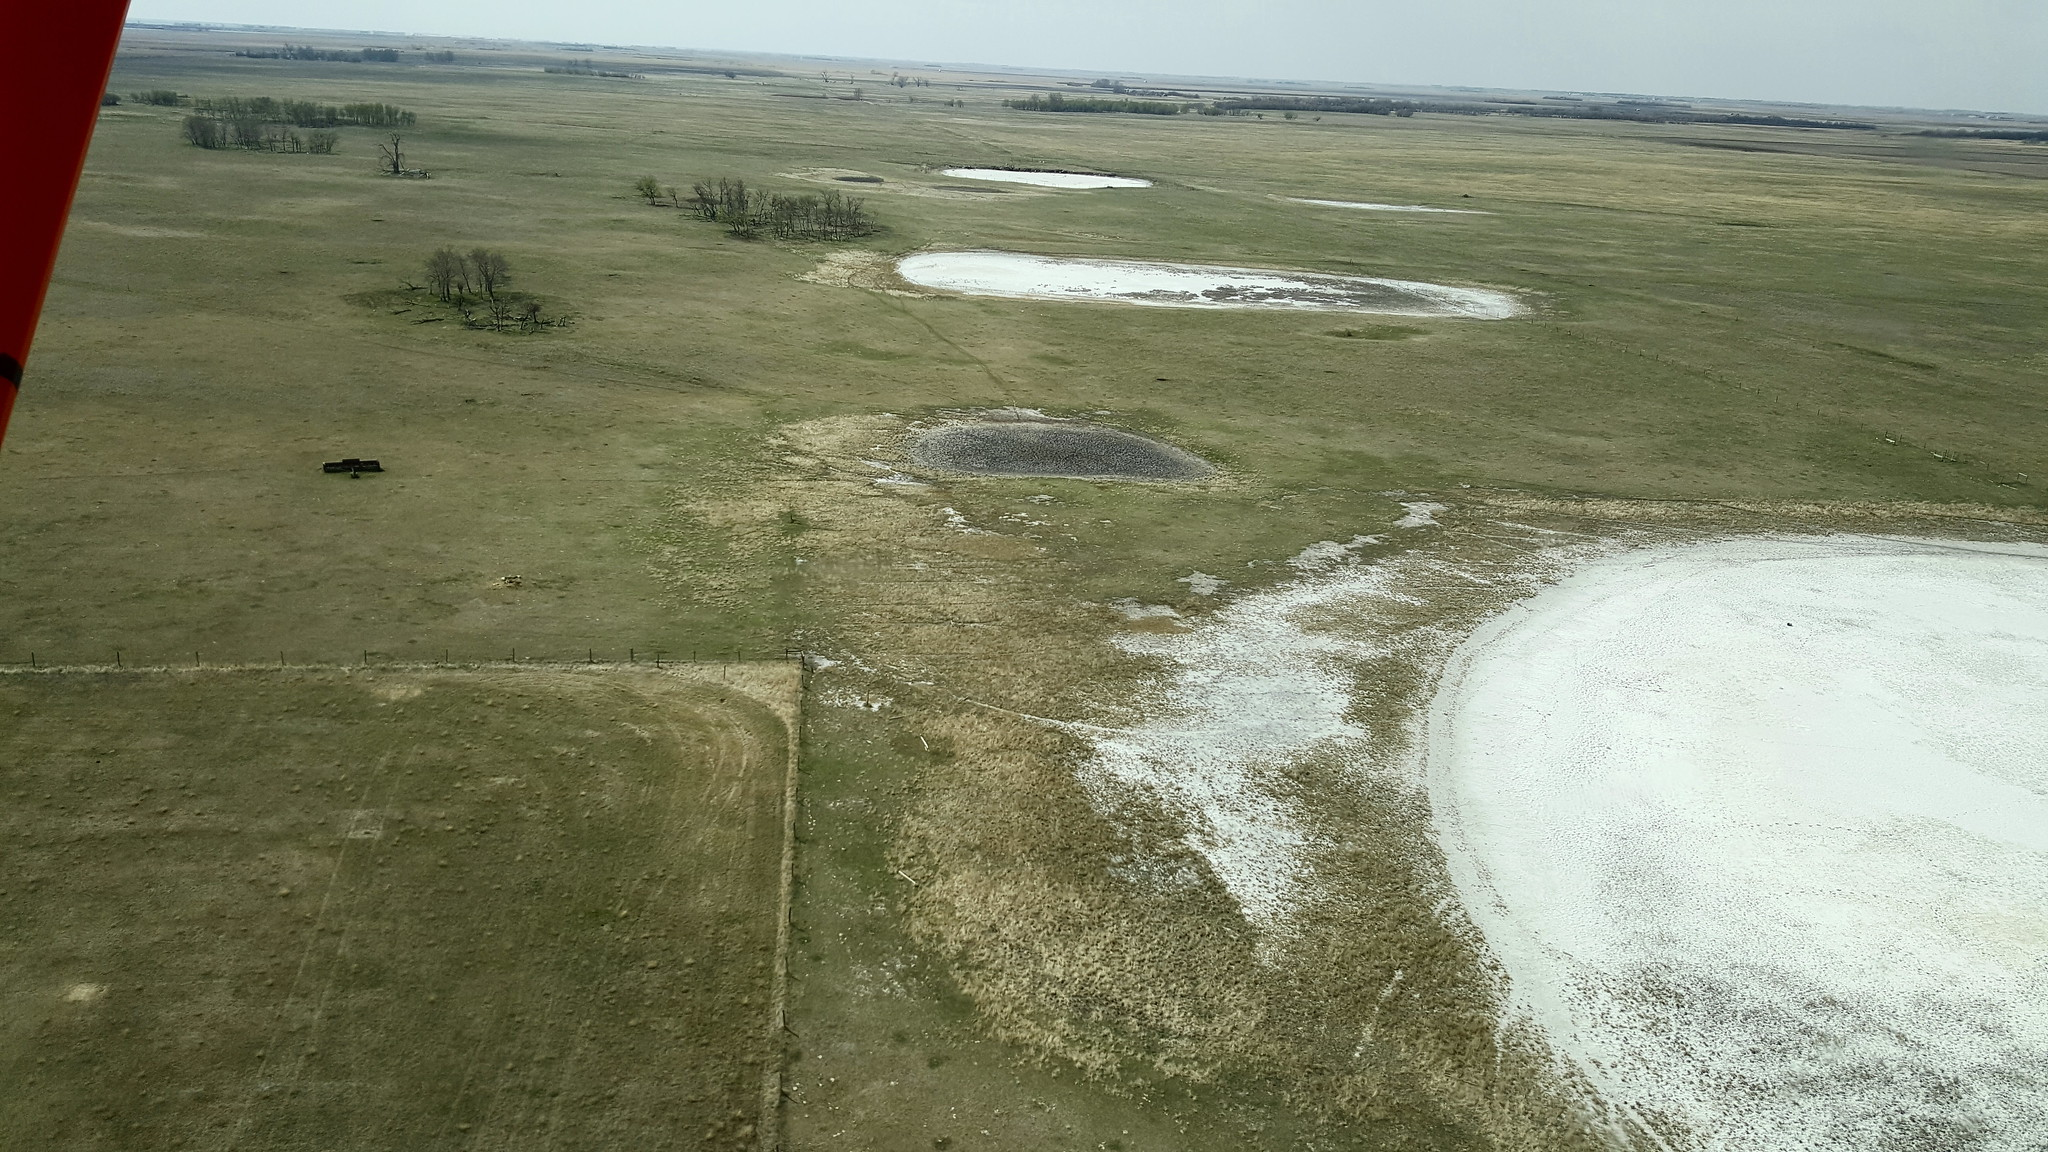 Dry salt flat wetlands near Etters Beach, SK. Photo Credit: Jeff Drahota, USFWS